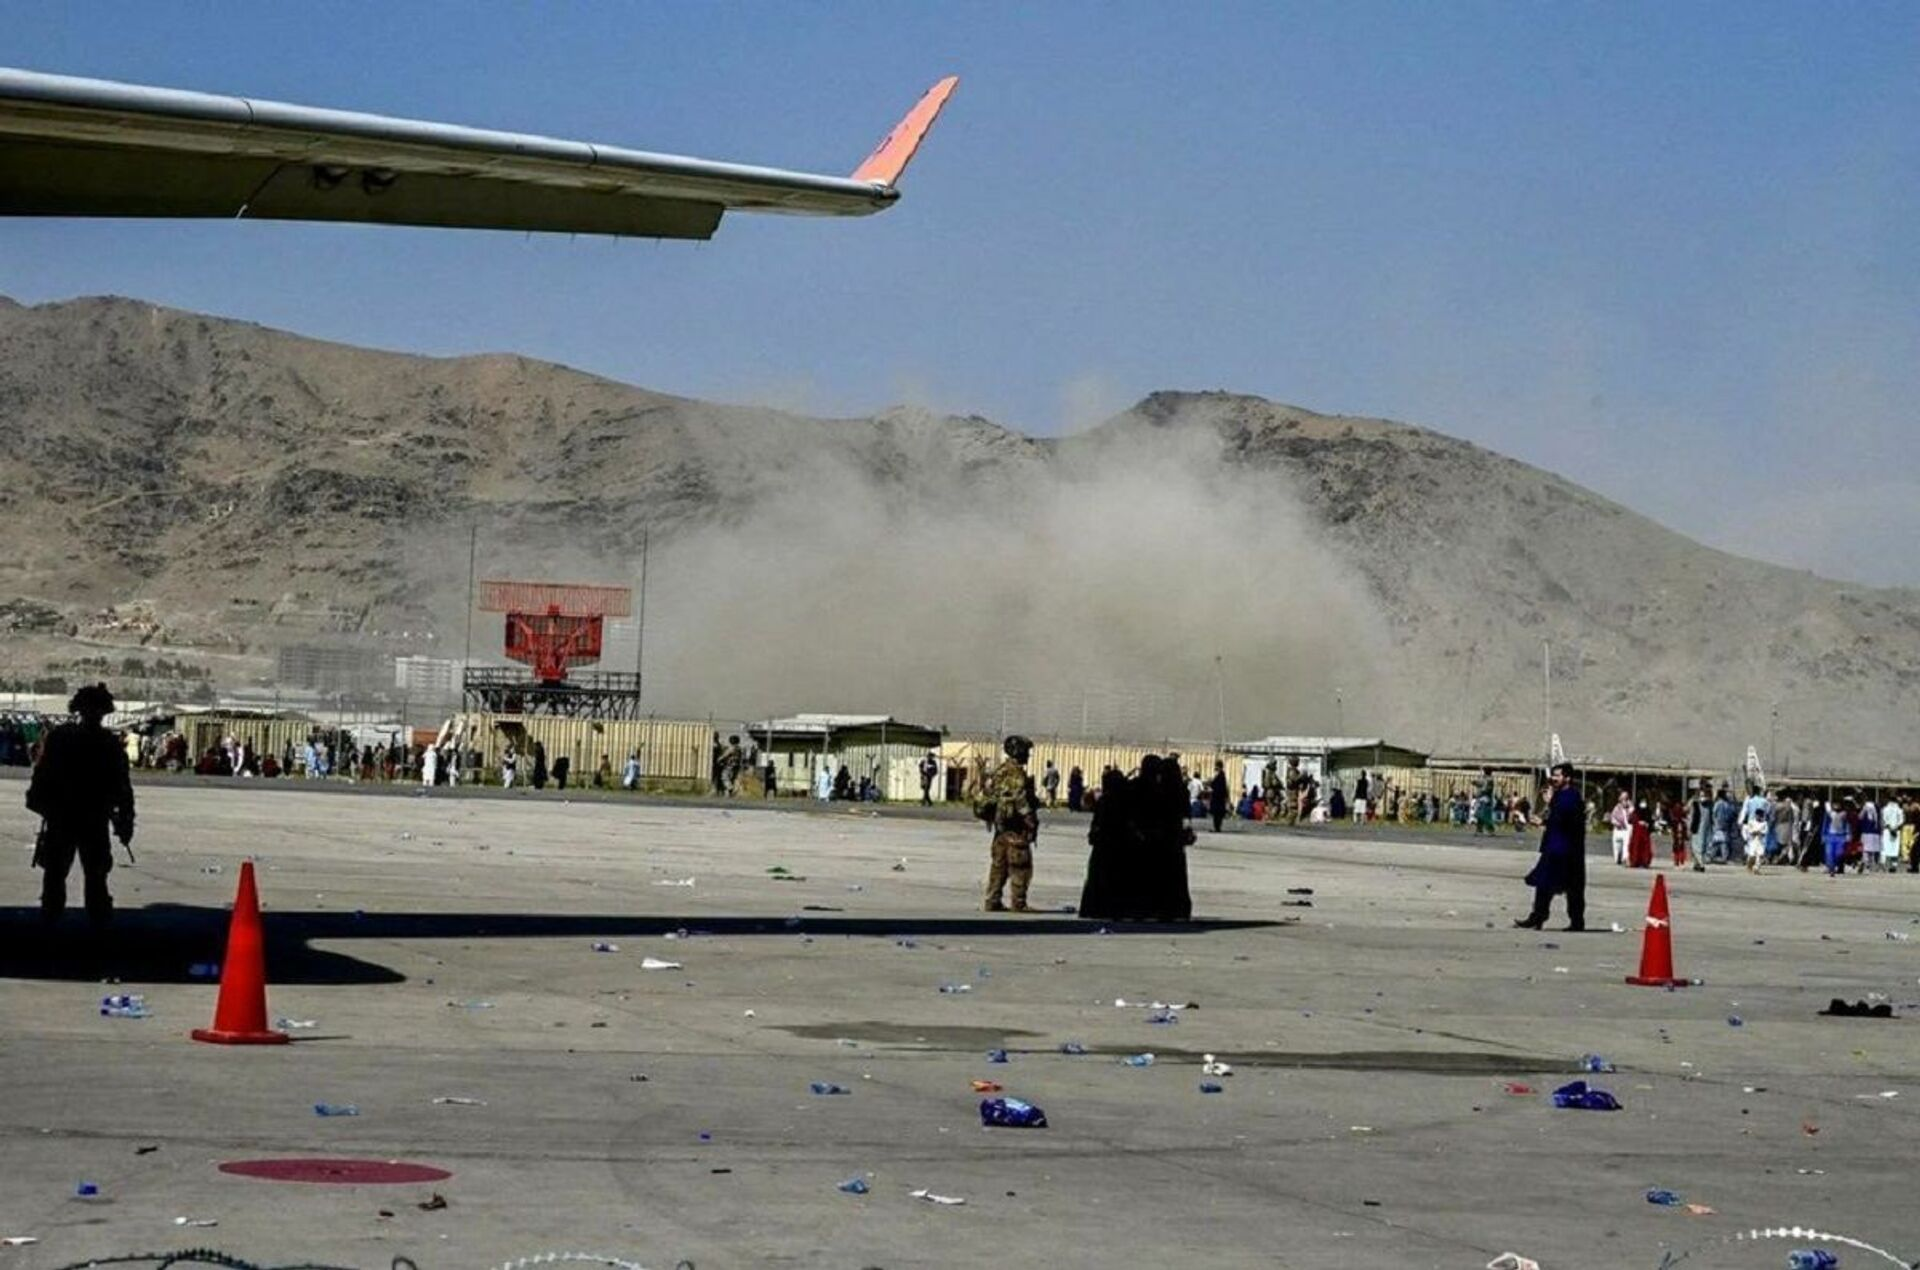 The moment when the explosion occurred at Kabul airport - Sputnik International, 1920, 07.09.2021